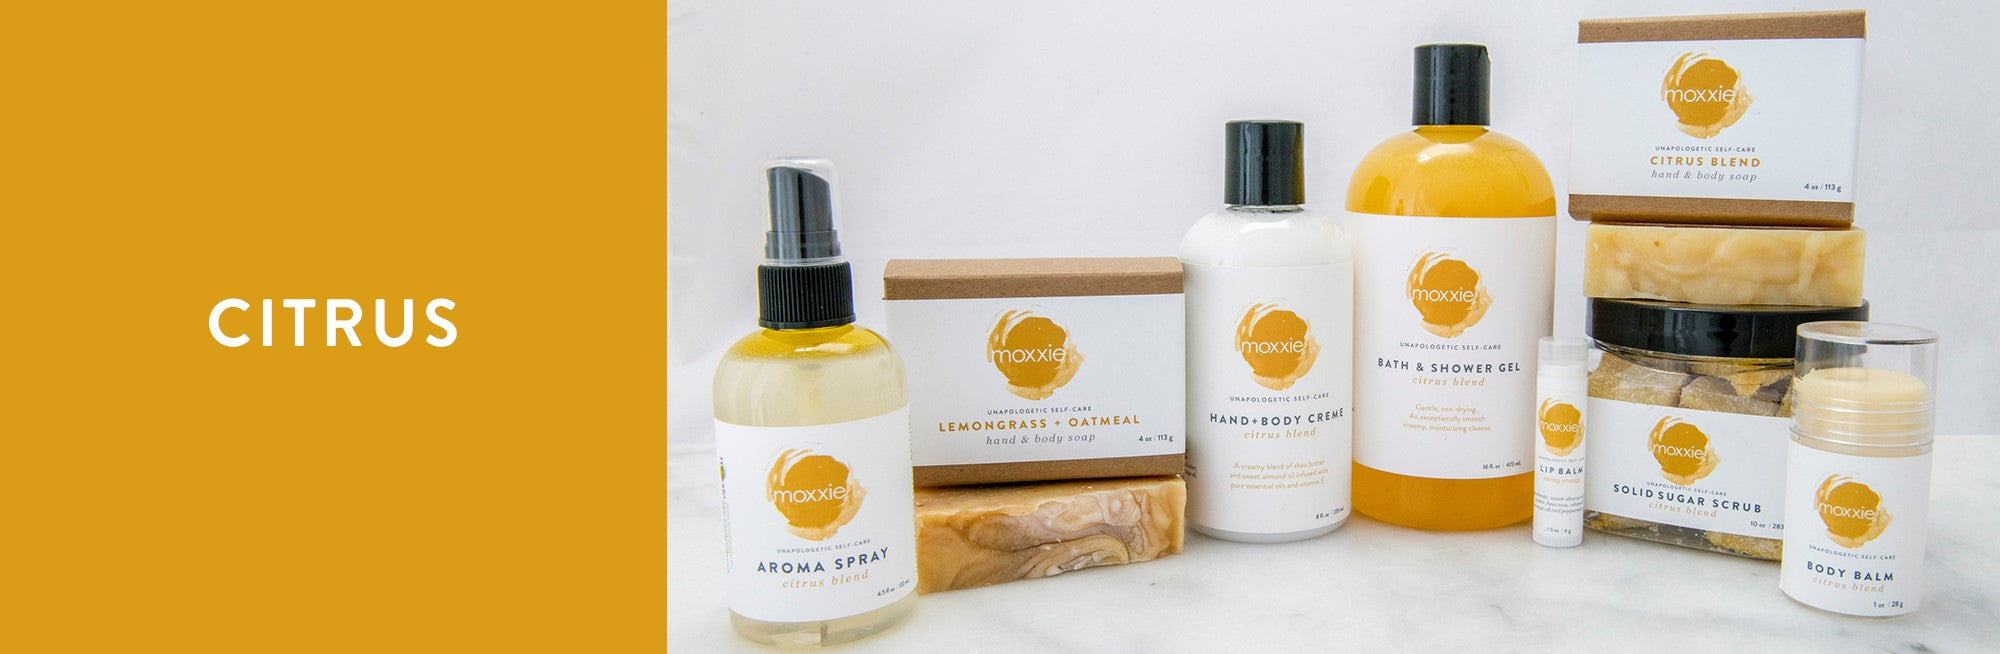 MOXXIE Citrus collection of handcrafted bath and body natural soaps, hand and body cremes, solid lotion body balms, solid sugar scrub cube and aroma sprayss,